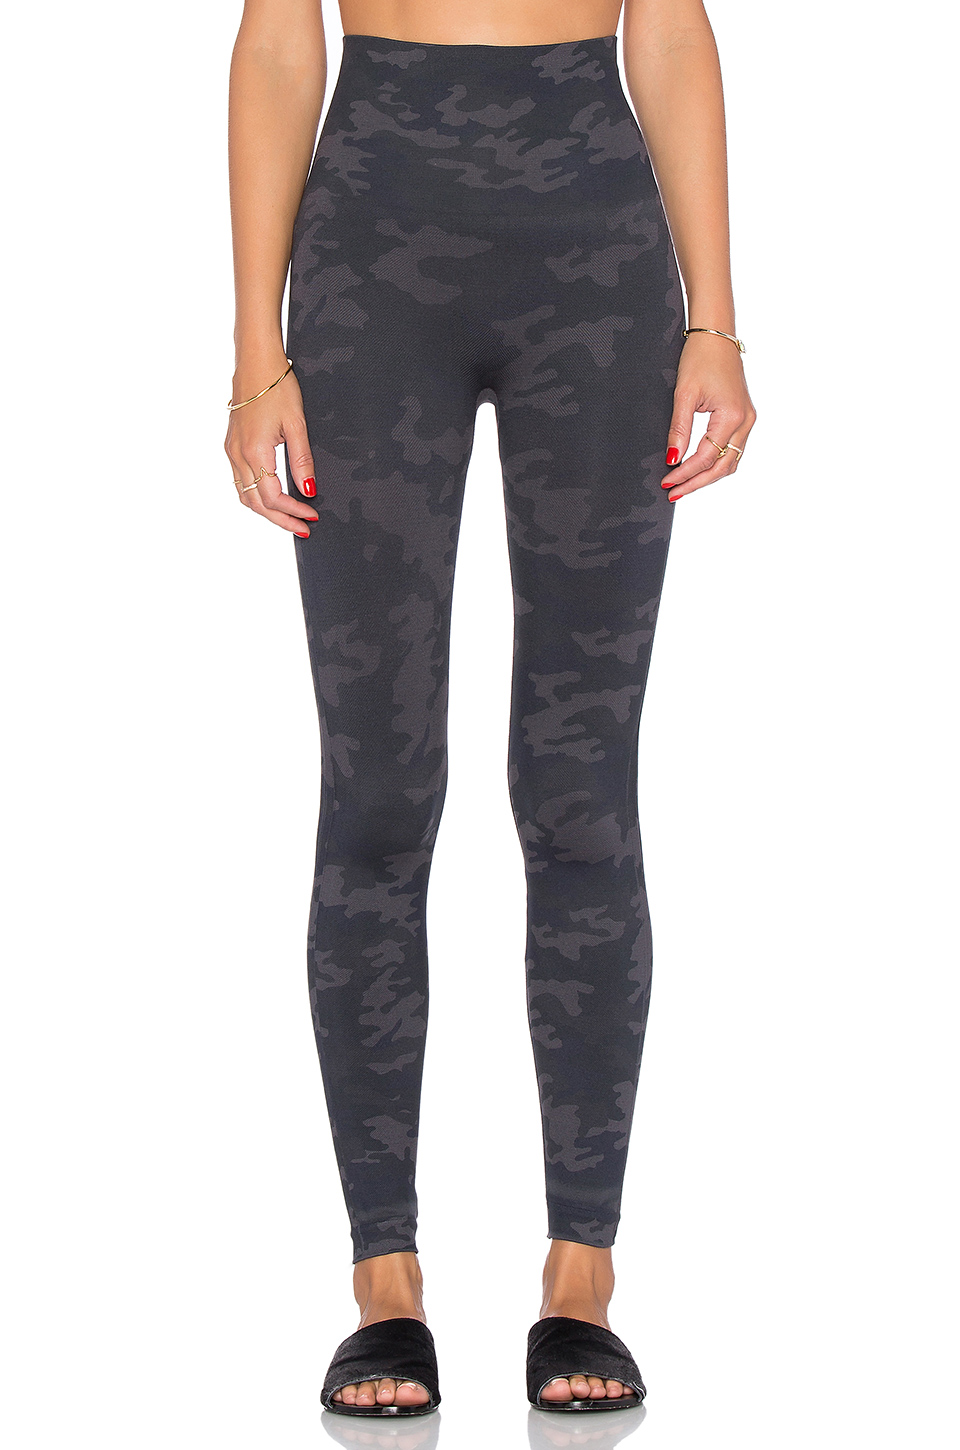 37adc99447d90 Spanx Women's Look At Me Now Tummy Control Camo Leggings In Black Camo